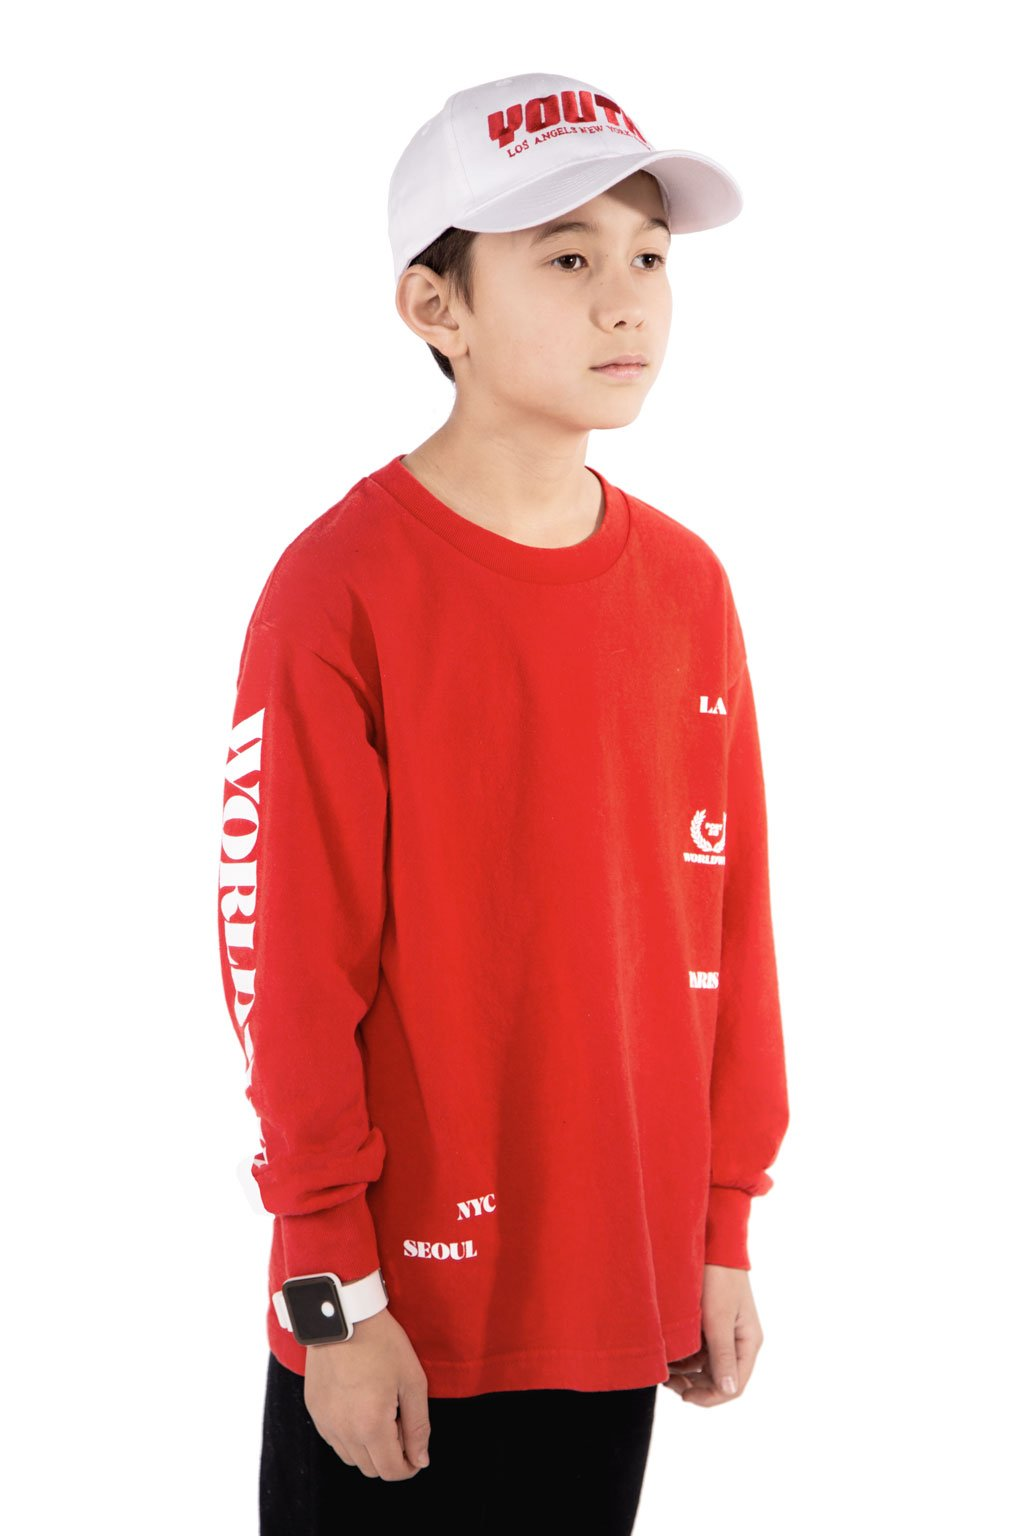 Red worldwide Long Sleeve T-shirt - Port 213.com